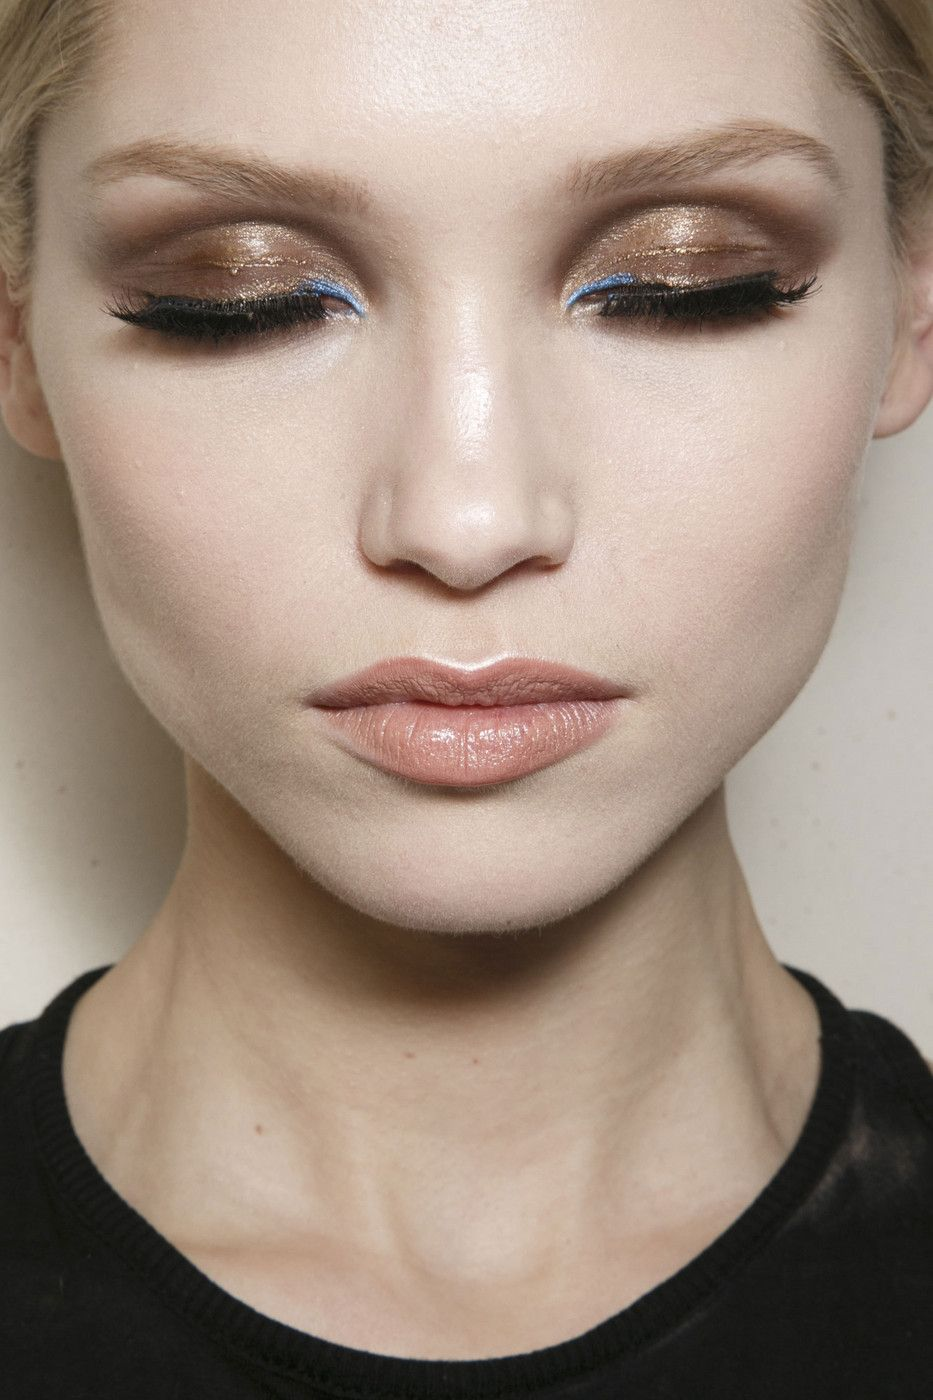 My gosh, I love her eye makeup, and the very faint peachy lip and blusher! This is perfect.